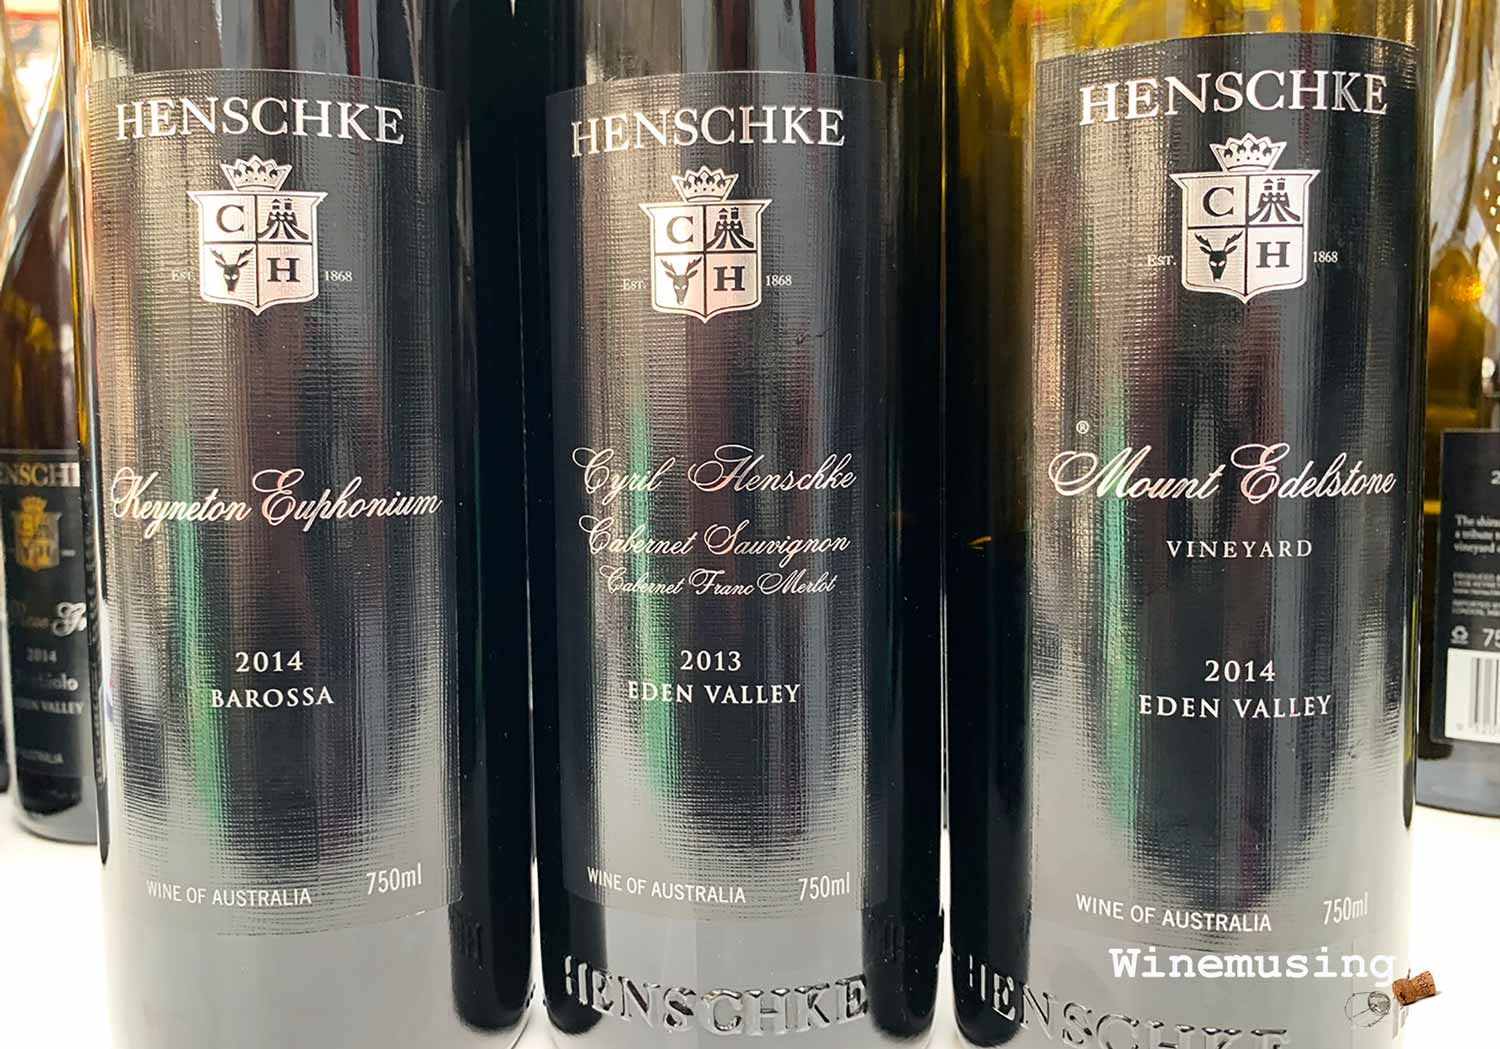 Henschke reds for now or later!